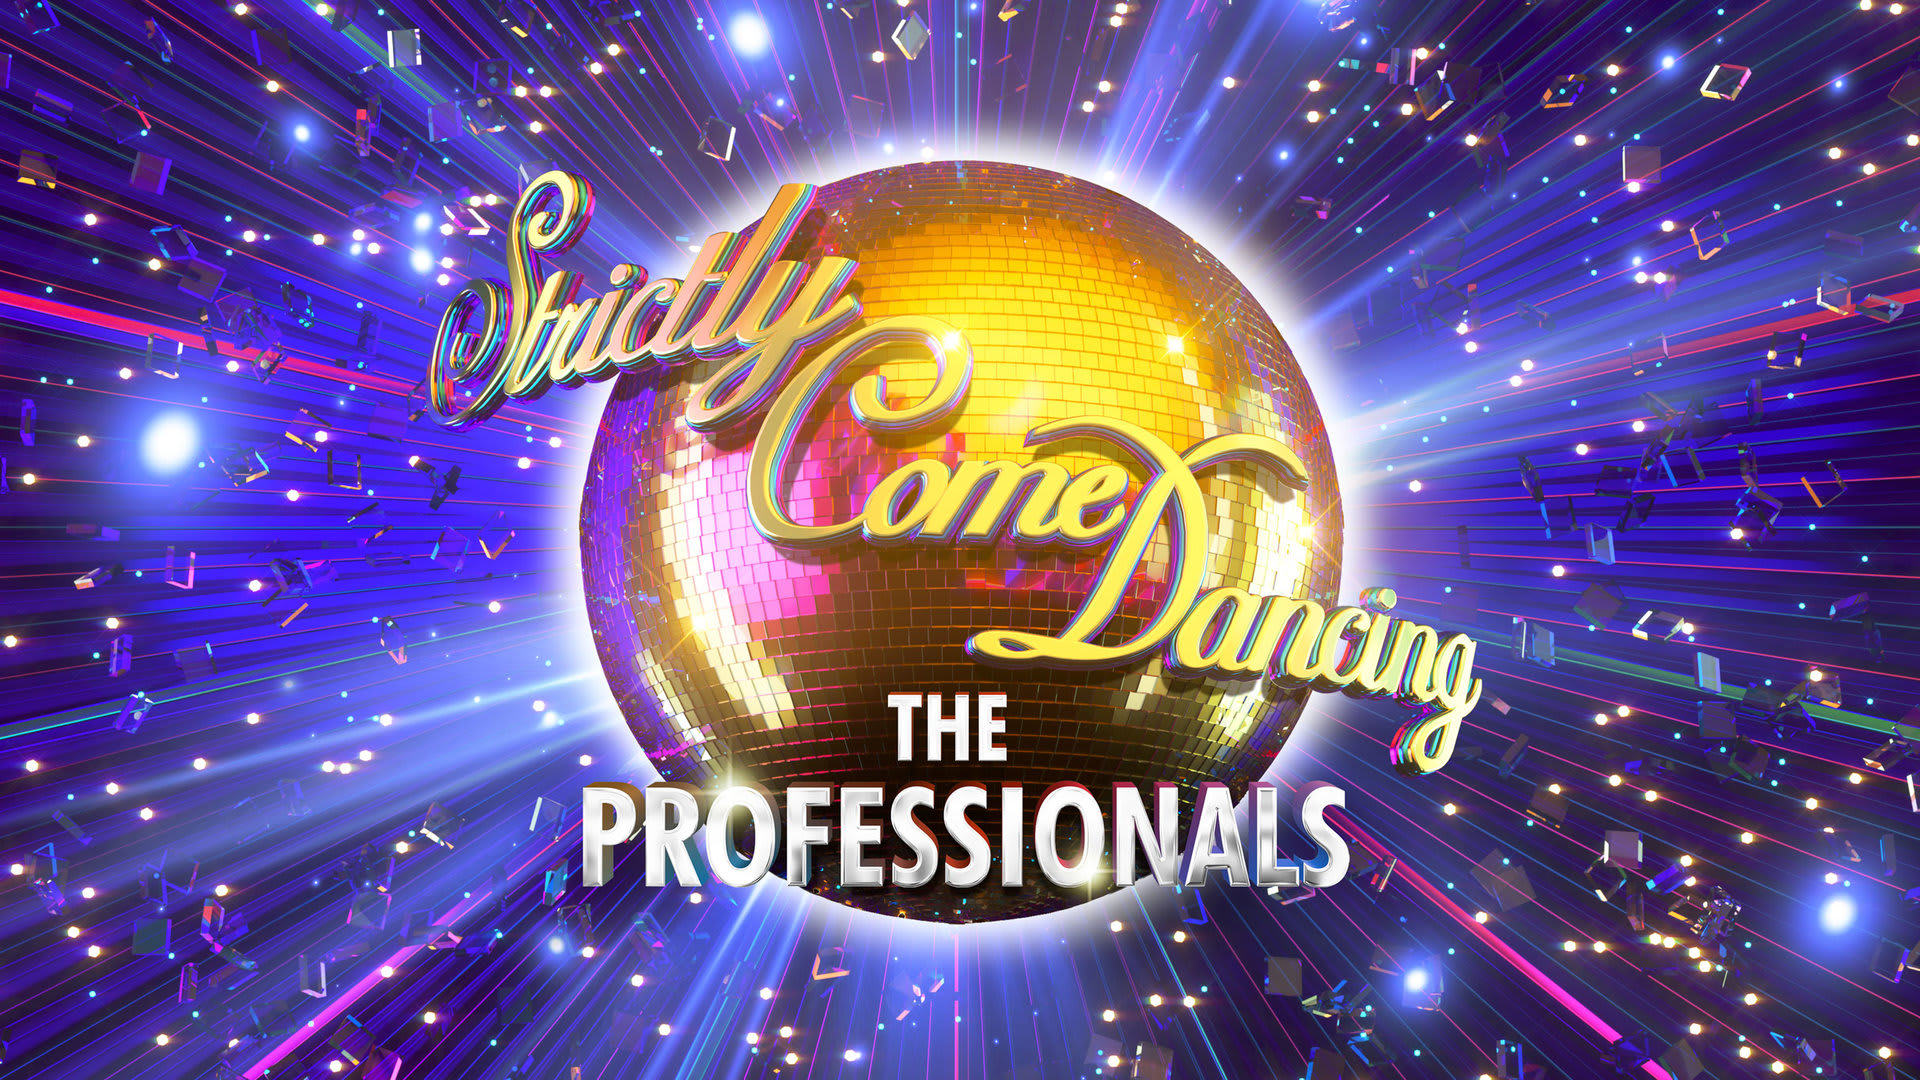 Strictly Come Dancing The Professionals Title Shot